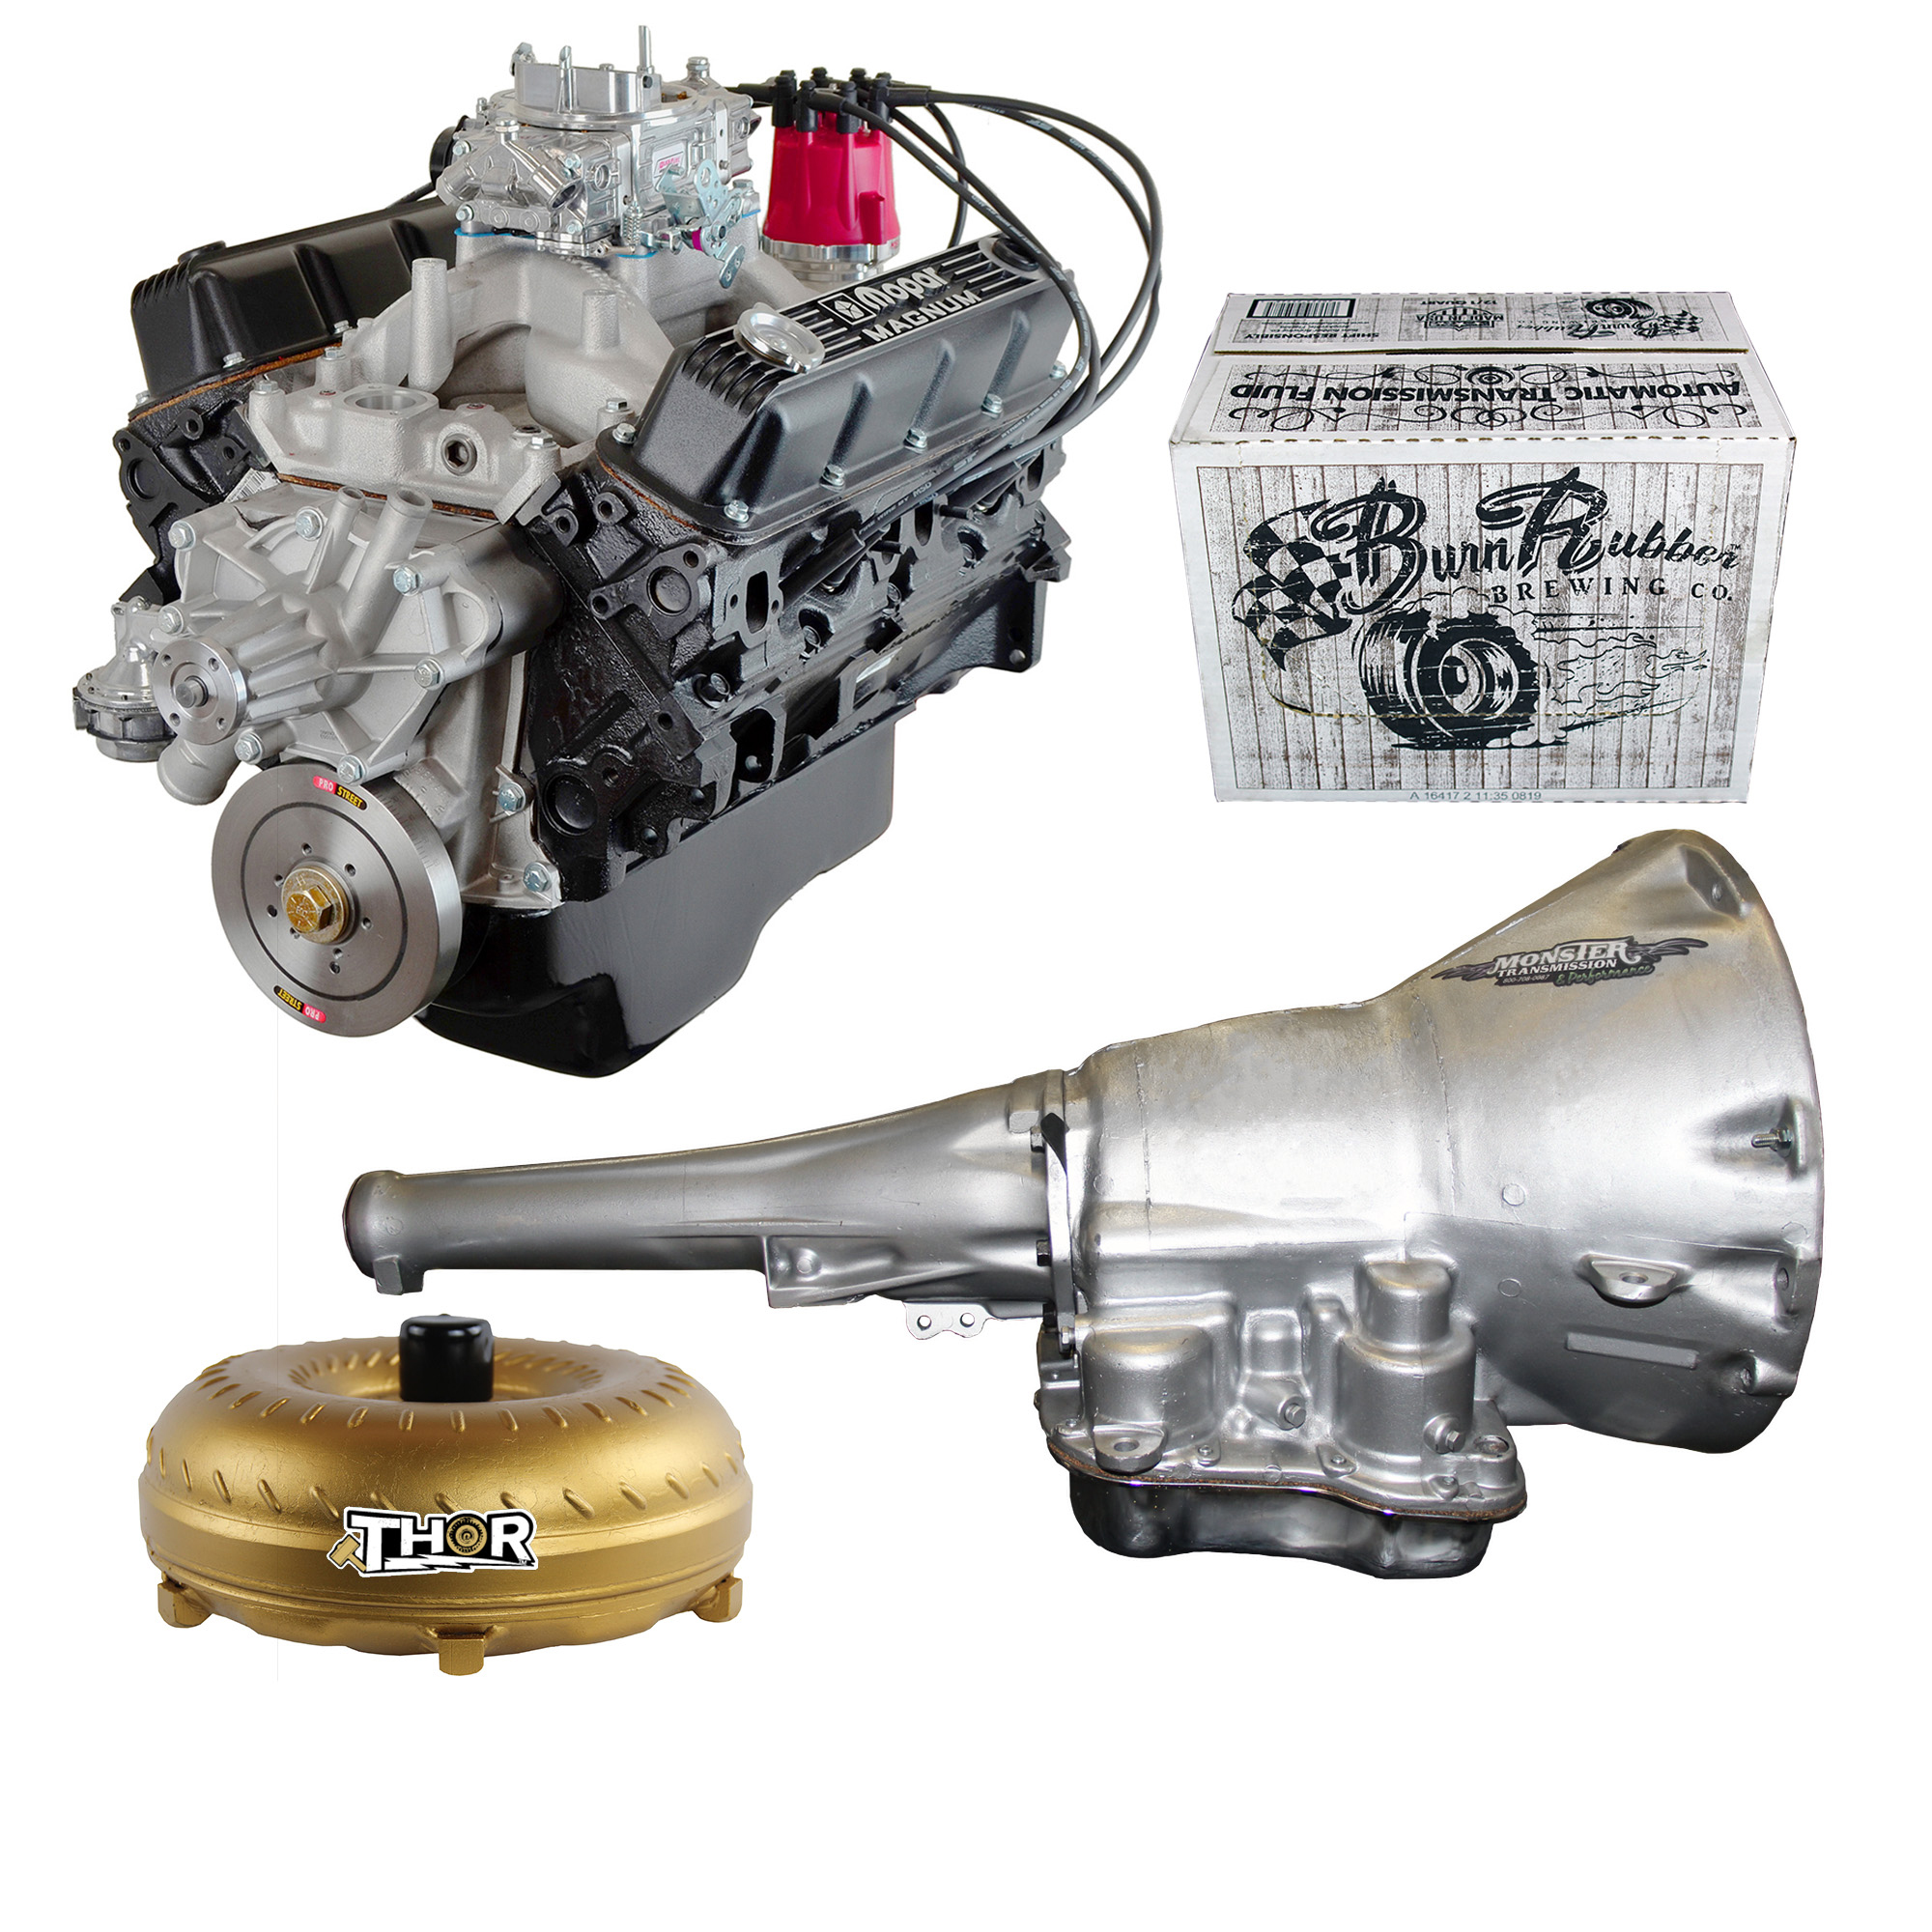 Engine And Transmission >> Monster Powertrain Package 360 Dodge 5 9l Engine Rated At 290hp 385tq With Tf8 727 Transmission